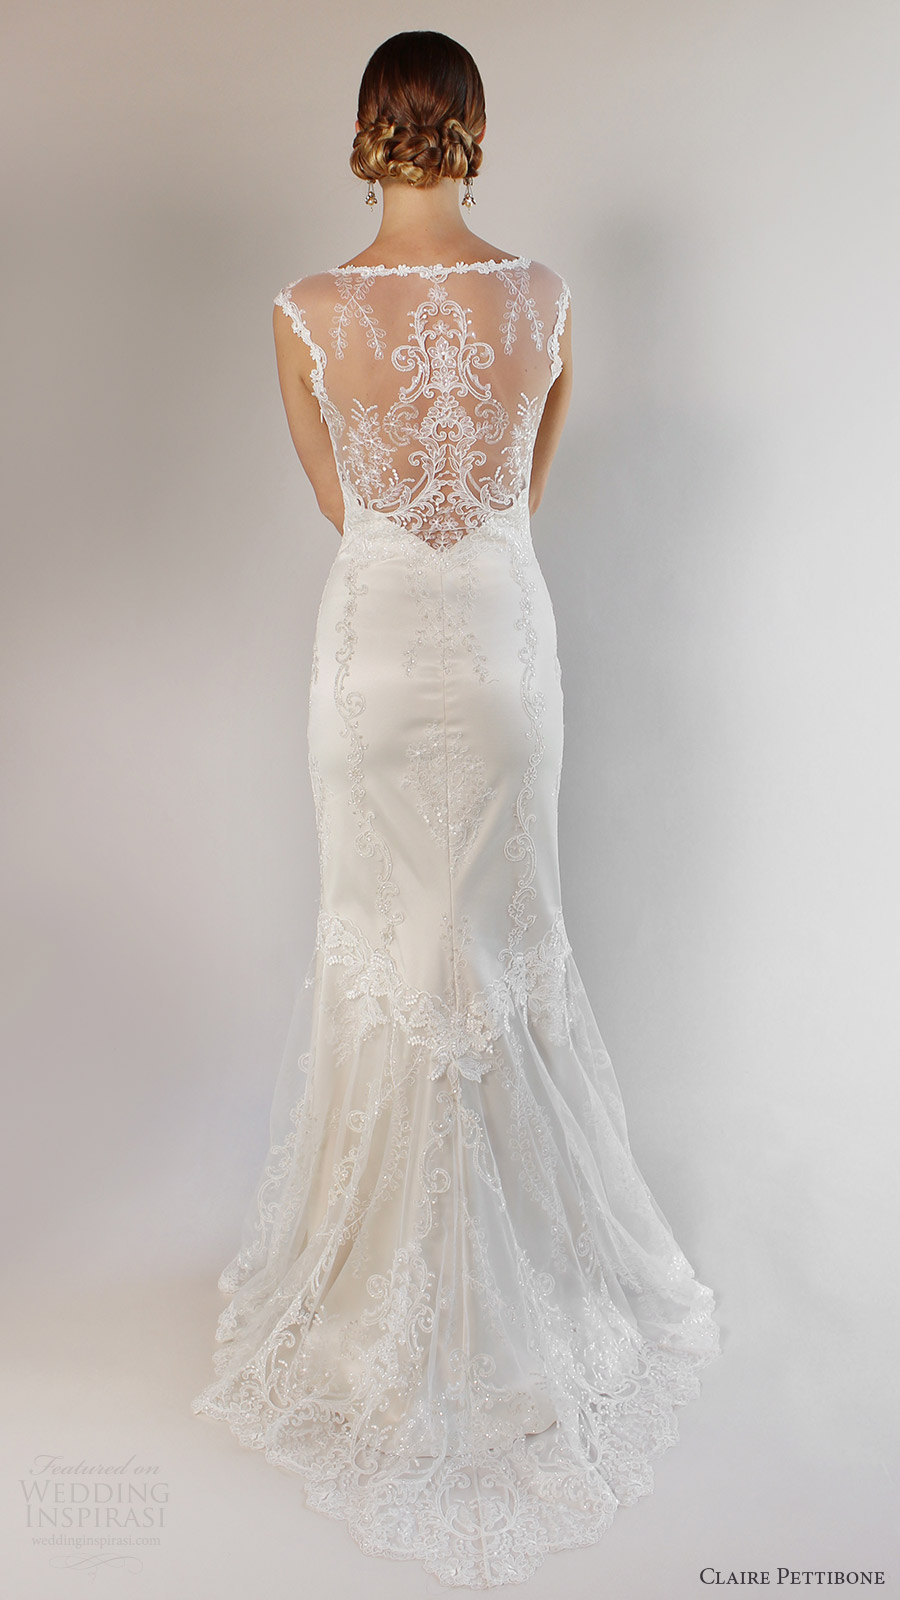 Vows Wedding Dresses Nyc : By claire pettibone spring wedding dresses inspirasi